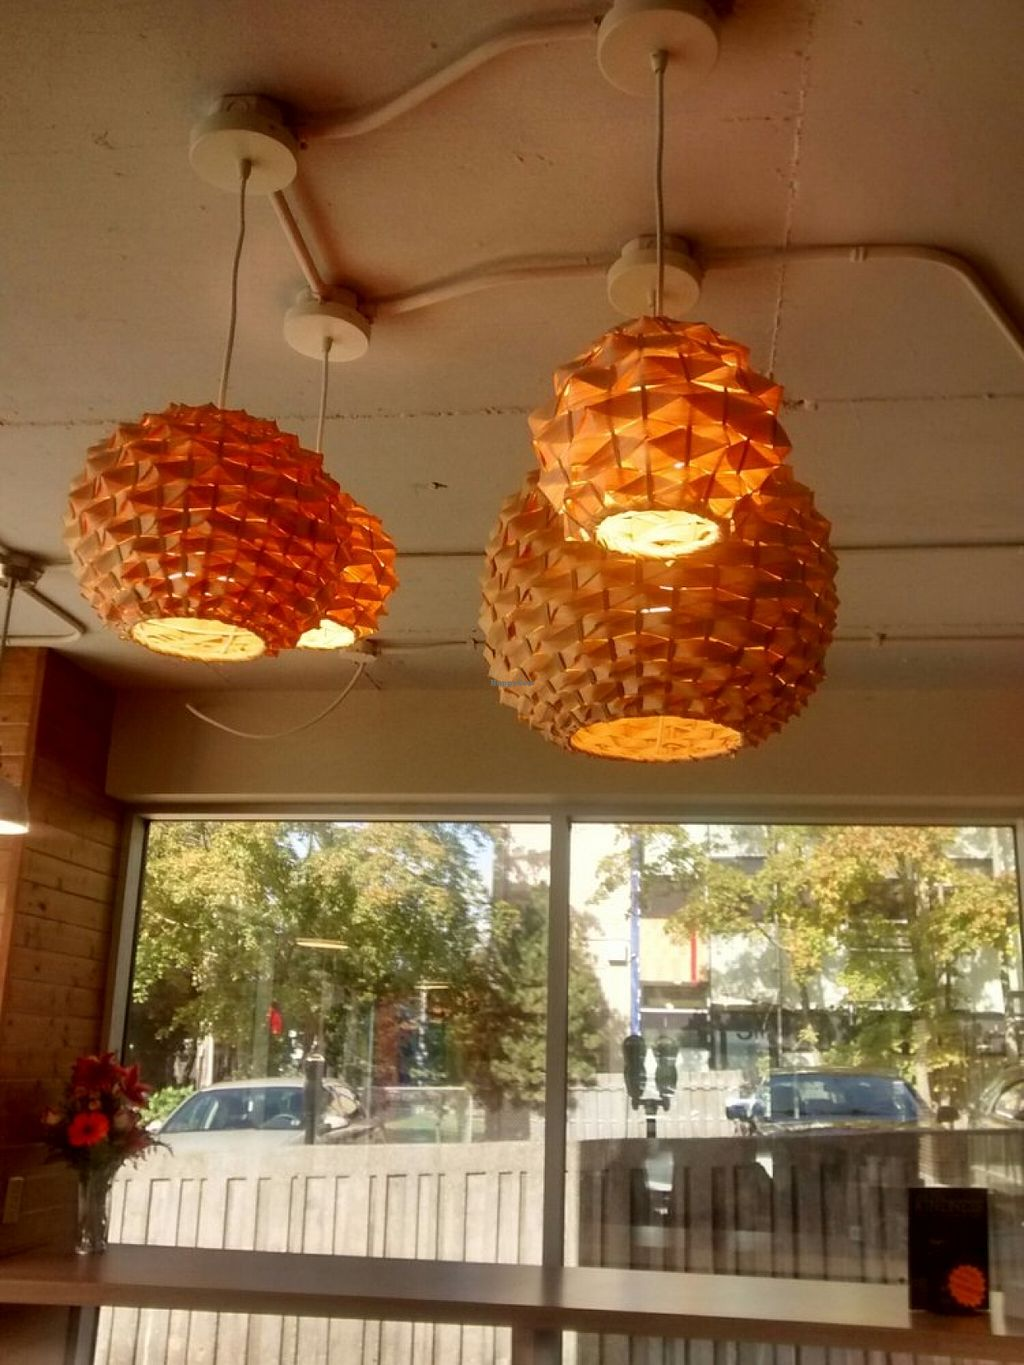 """Photo of CLOSED: Fruition  by <a href=""""/members/profile/QuothTheRaven"""">QuothTheRaven</a> <br/>Love these lights <br/> October 25, 2015  - <a href='/contact/abuse/image/64144/122644'>Report</a>"""